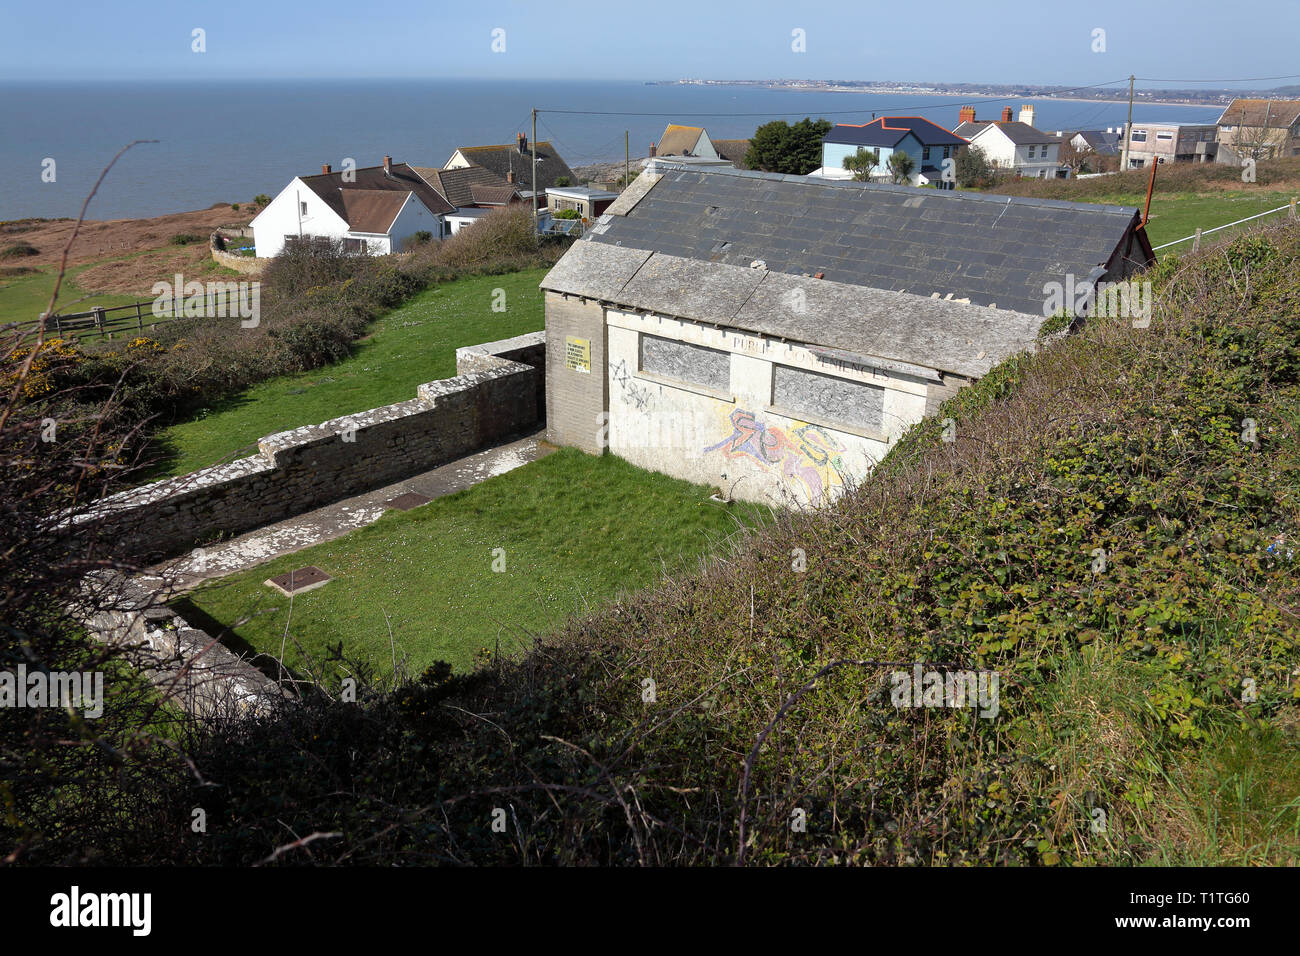 The old toilet block below the shops on the main road in Ogmore by sea, soon to be demolished to make way for the new village hall on this ground. - Stock Image